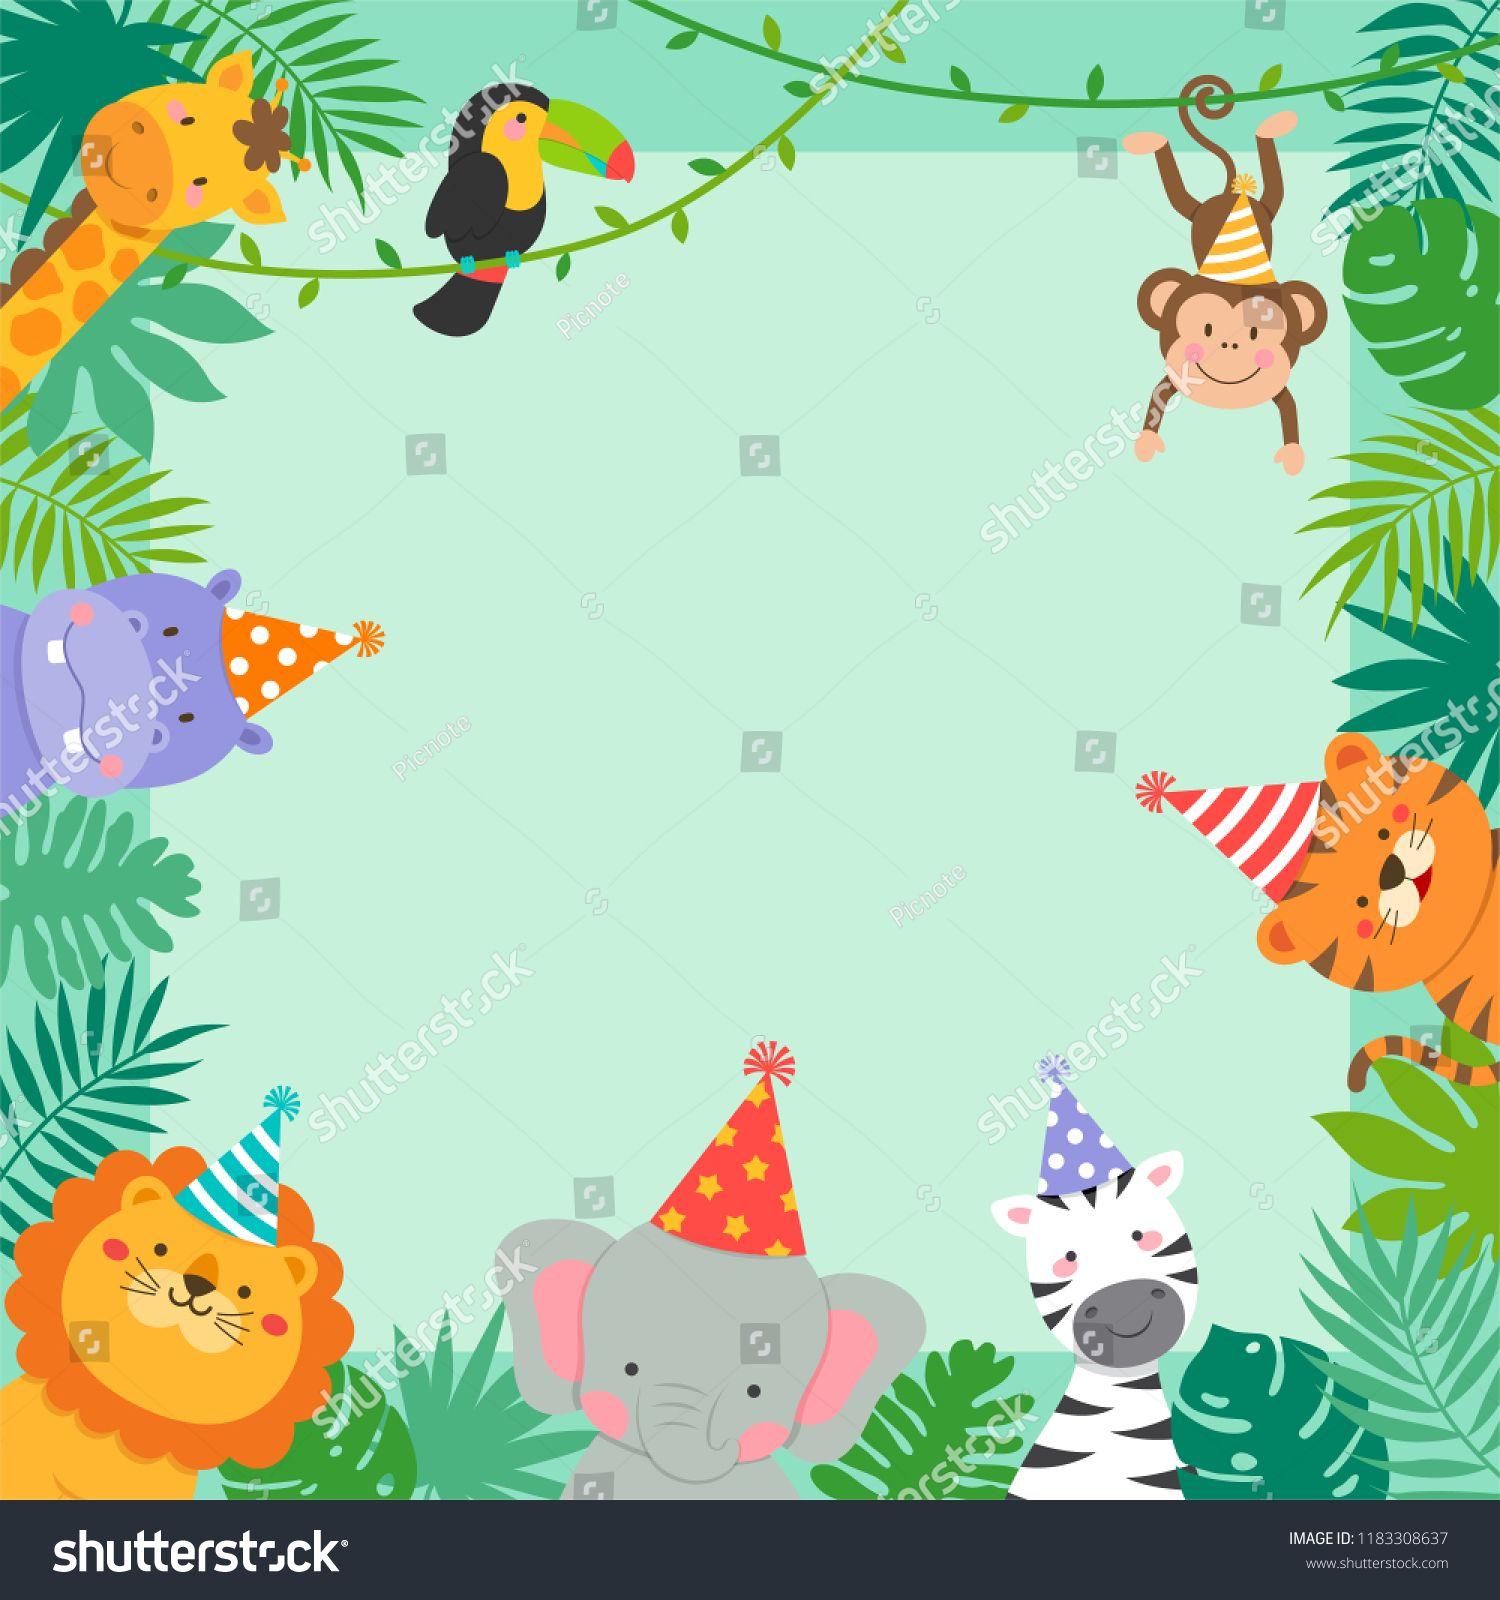 Frame Border Of Cute Jungle Animals Cartoon And Tropical Leaves For within measurements 1500 X 1600